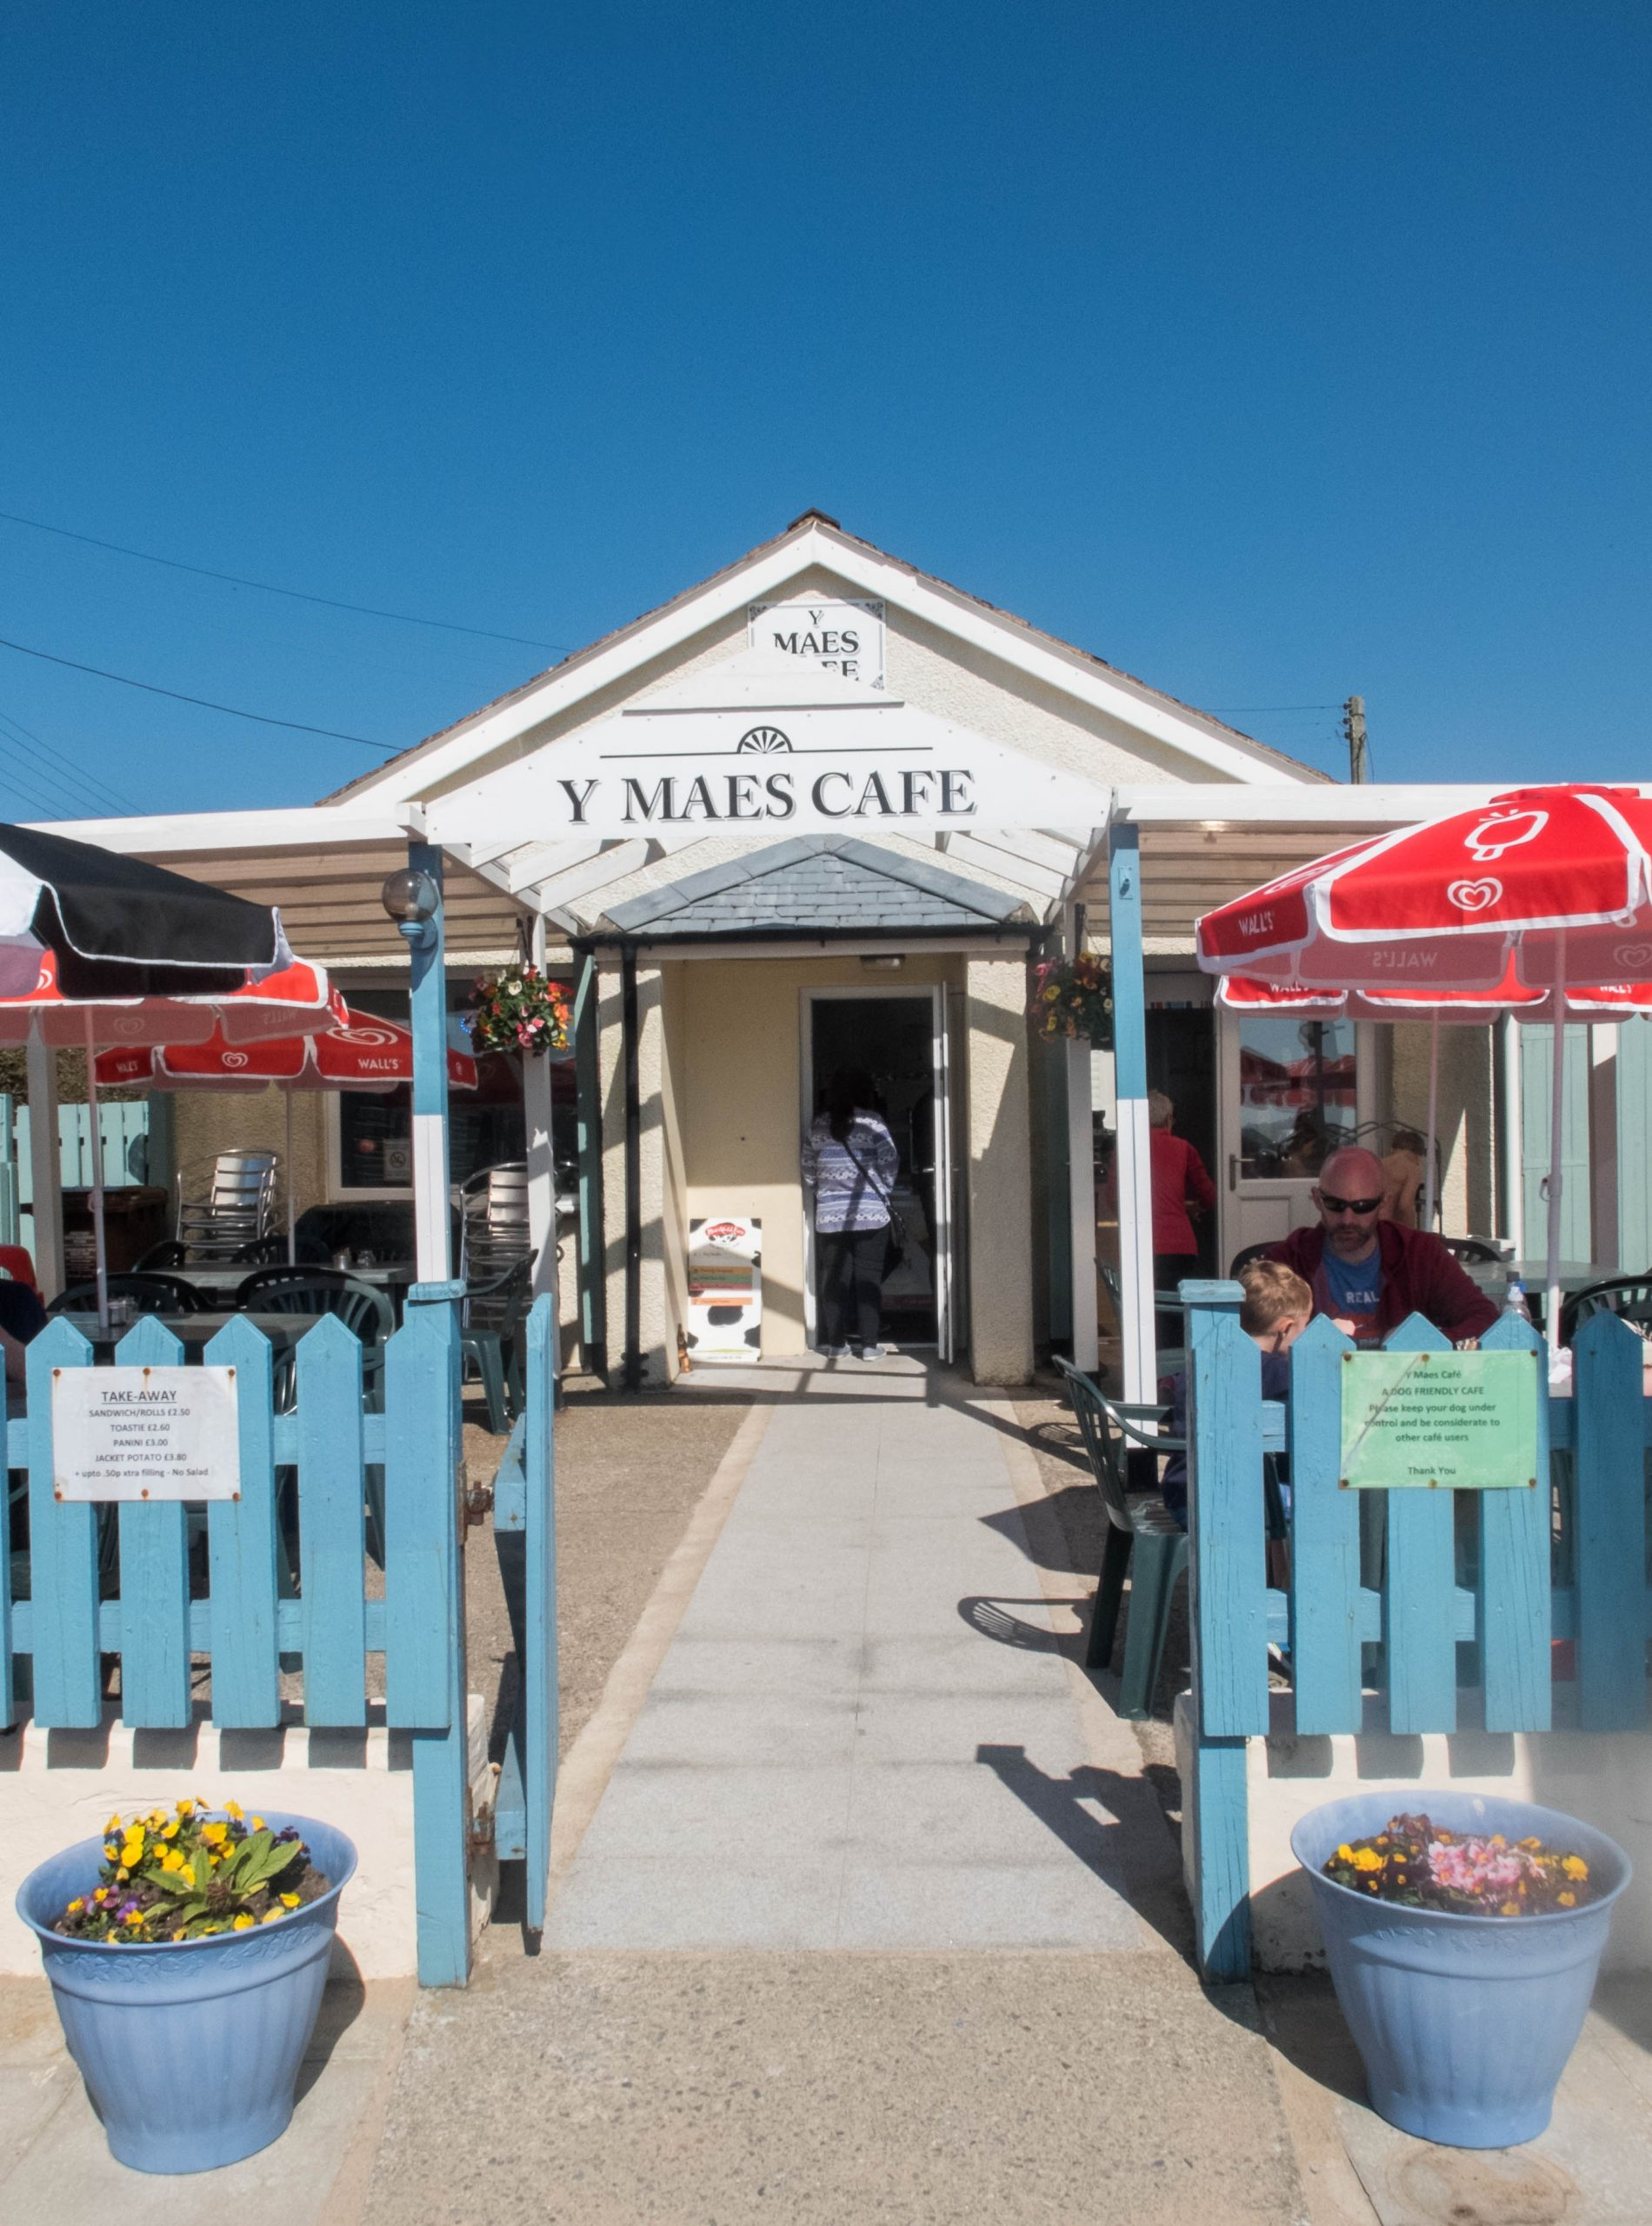 outside view of seating area at the Maes cafe, on Llandanwg beach